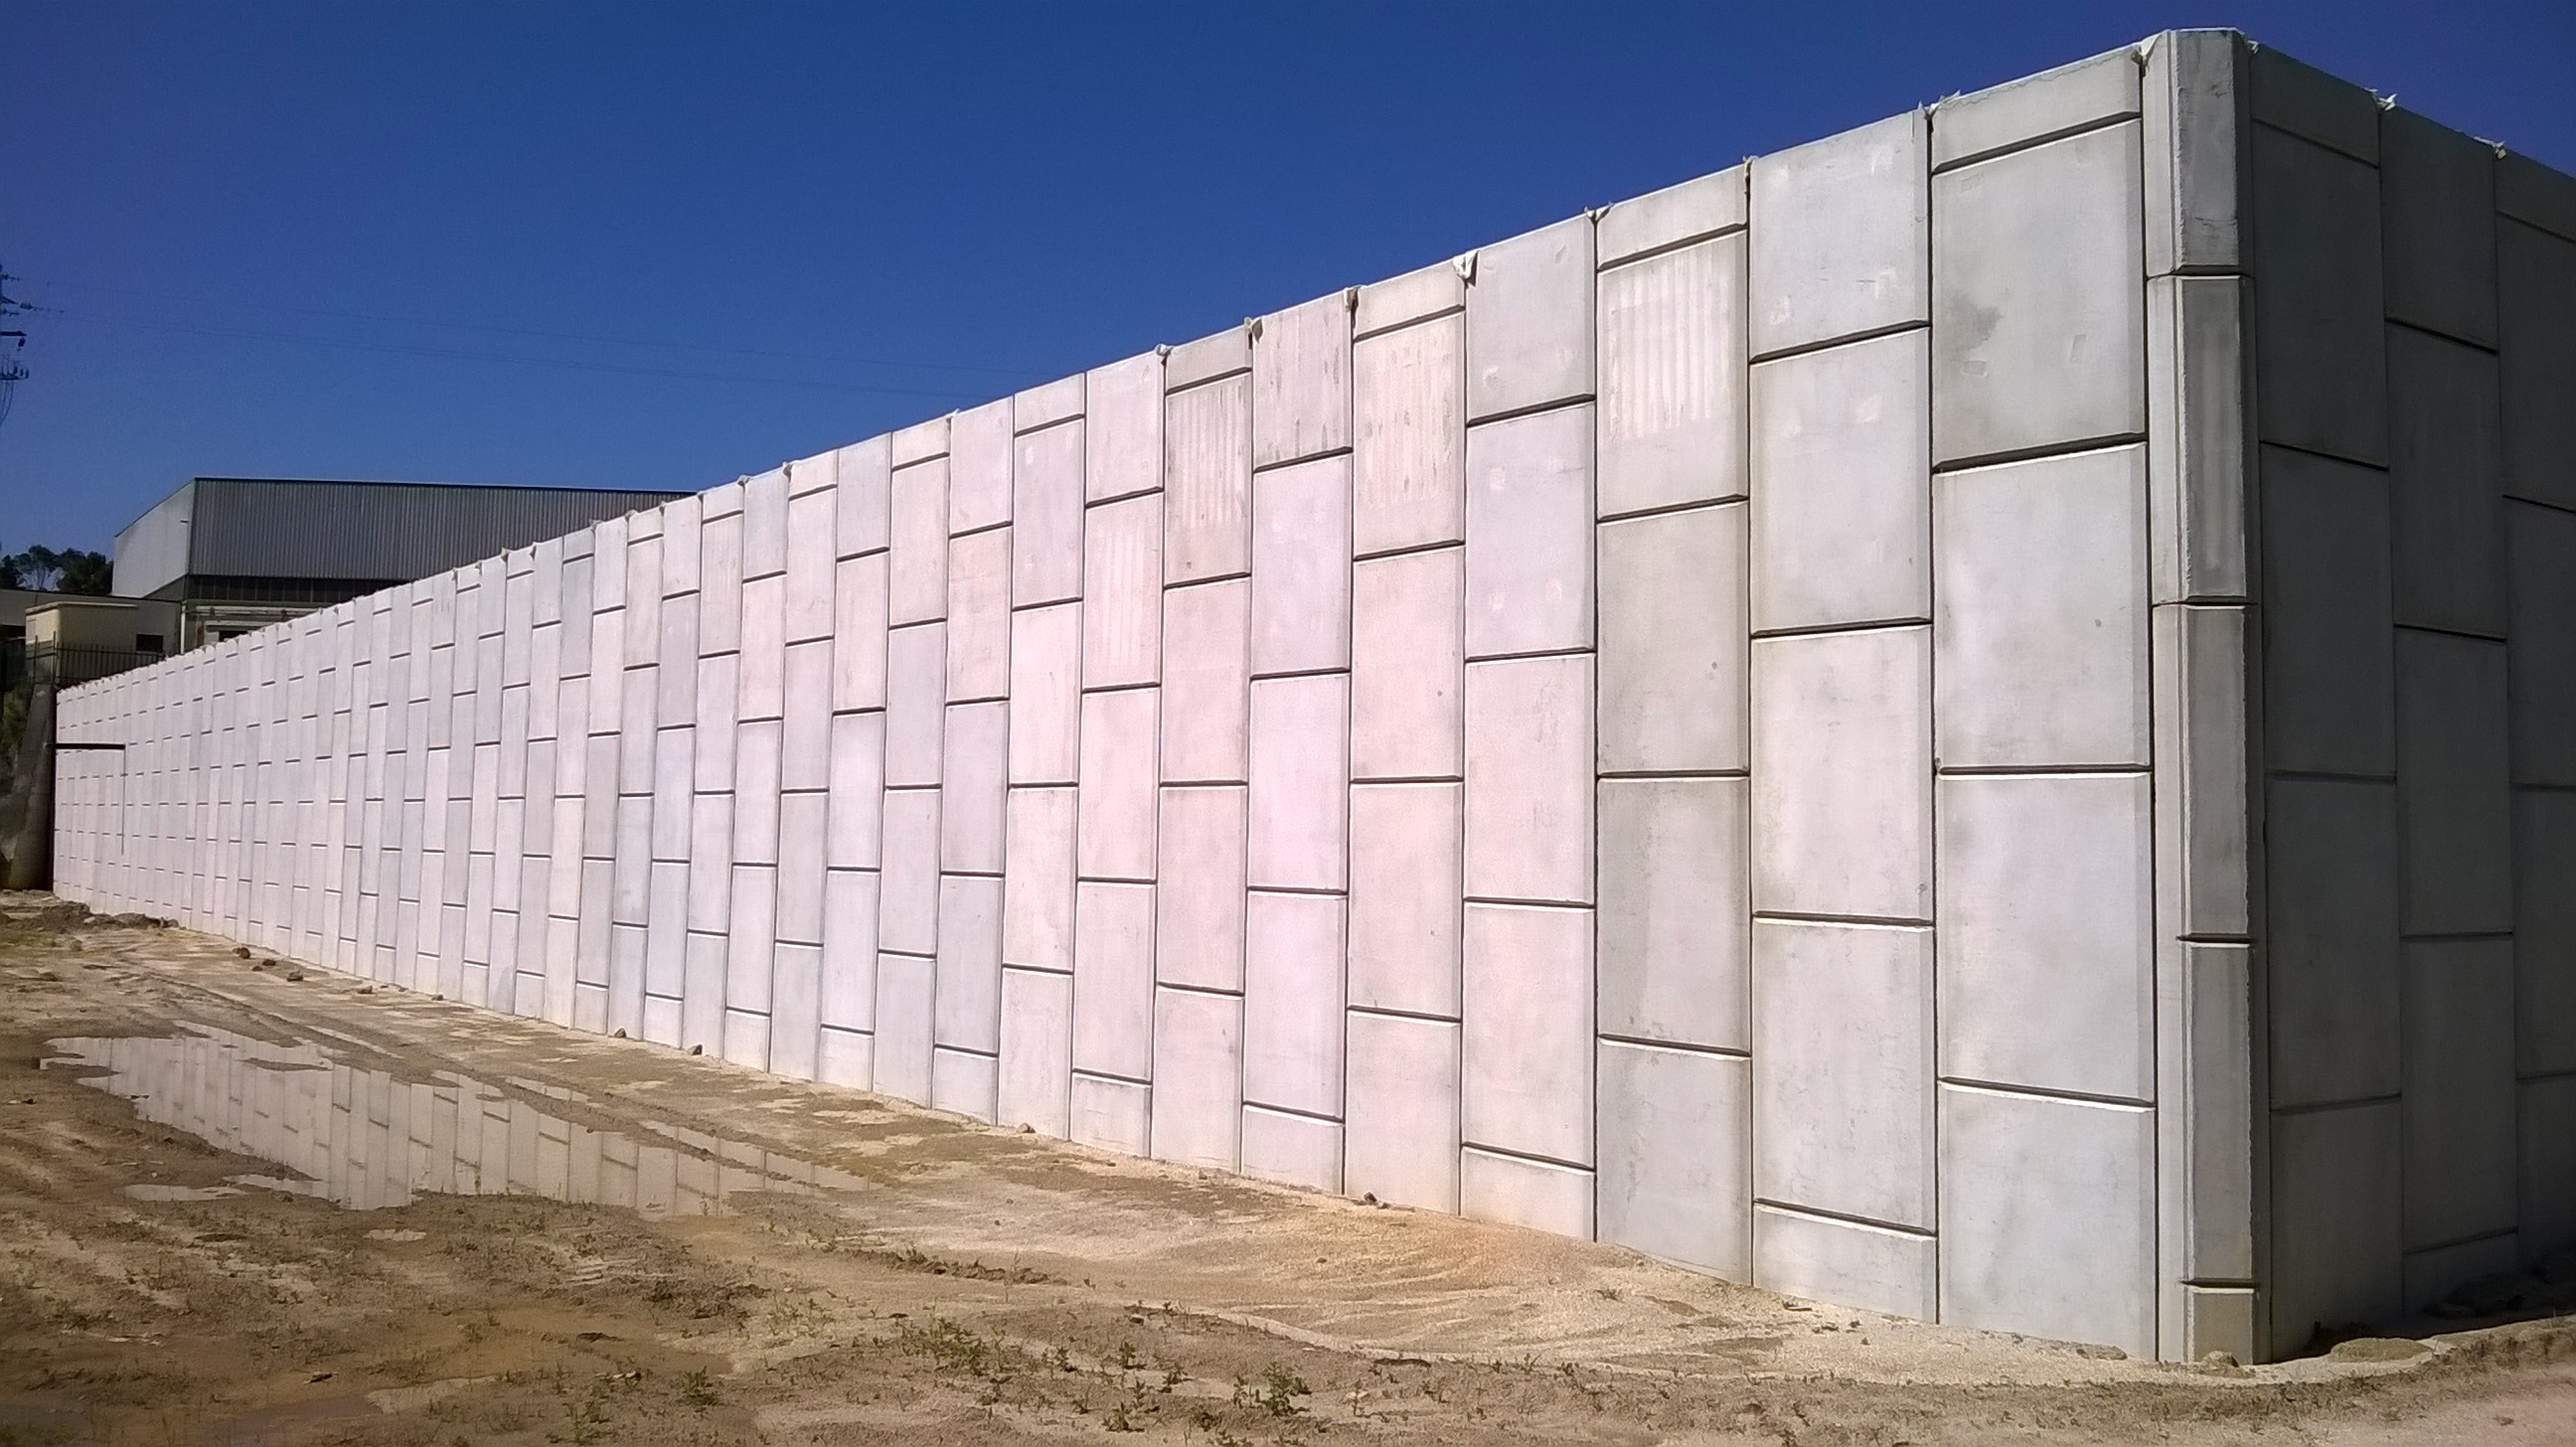 """SMART WALL"" REINFORCED EARTH RETAINING WALLS FOR DUARTESFER, LDA. IN BARCELOS – PORTUGAL"